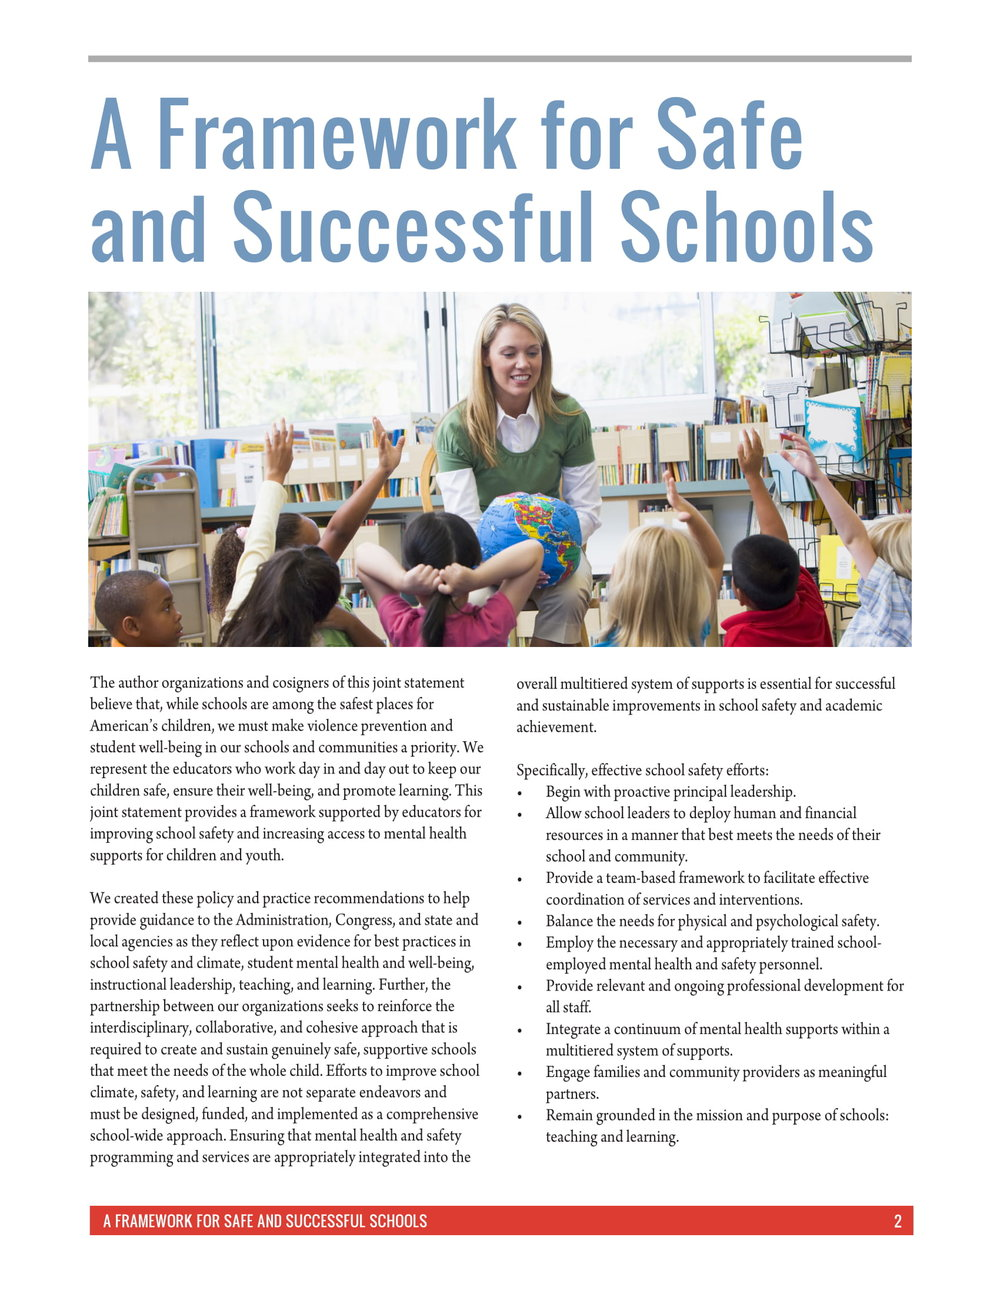 Framework_for_Safe_and_Successful_School_Environments (1)-03.jpg